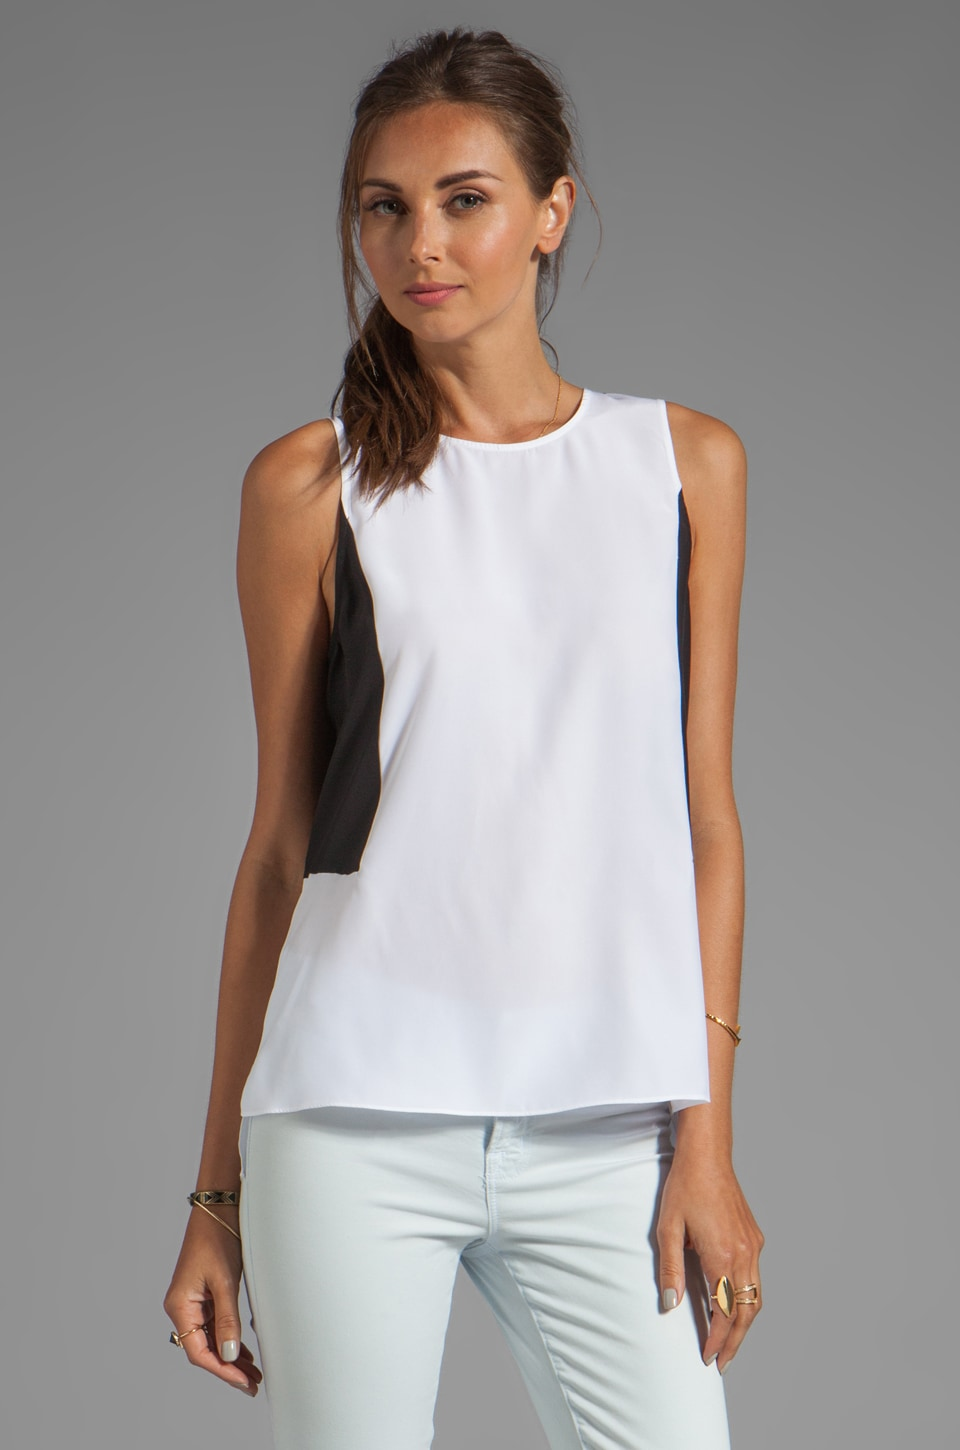 Parker Gina Combo Top in White